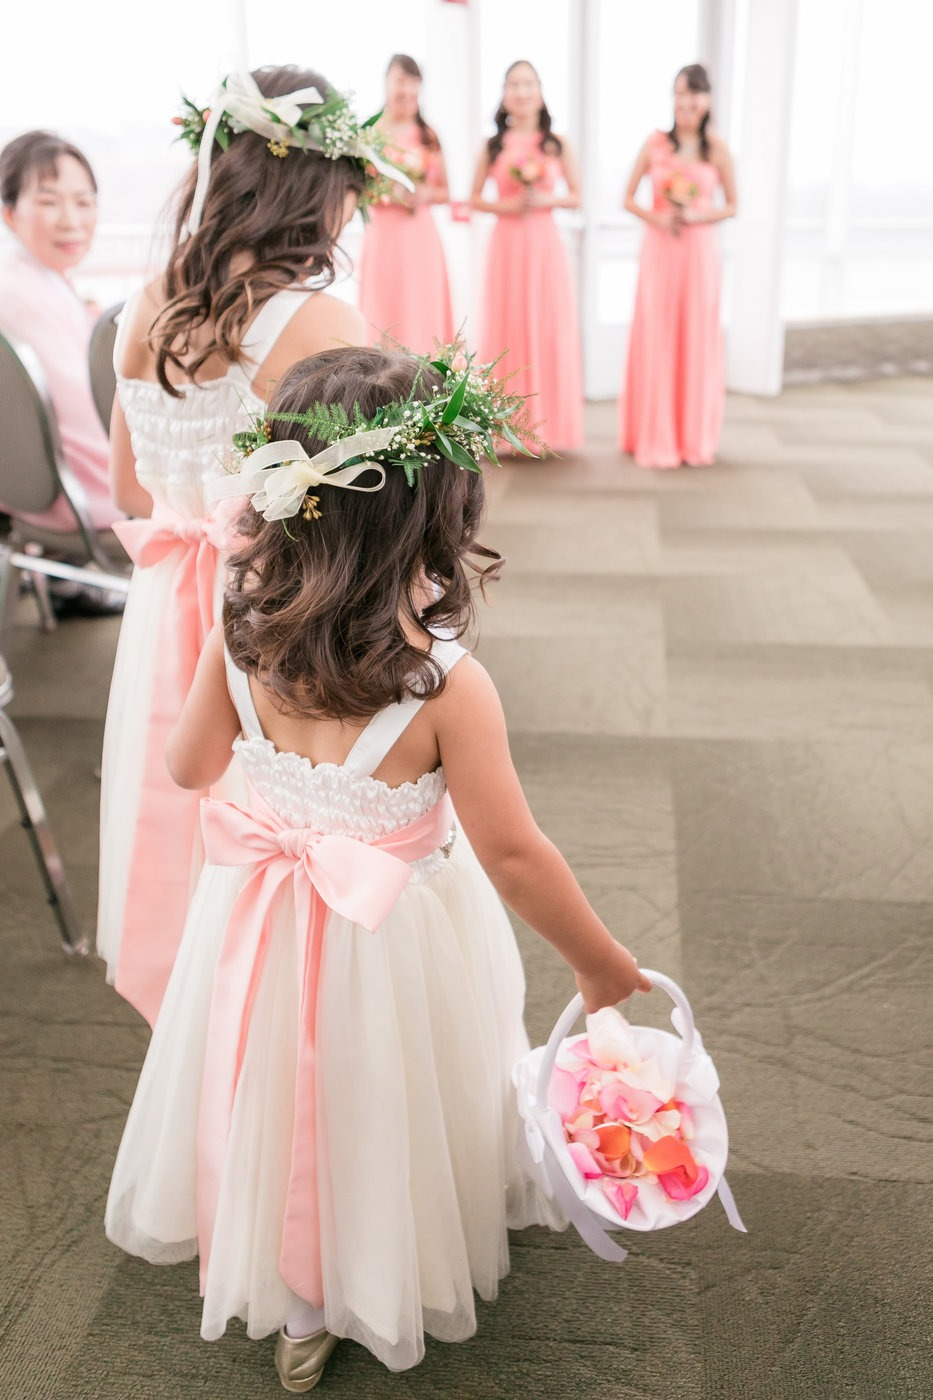 Wedding flower girl with flowers